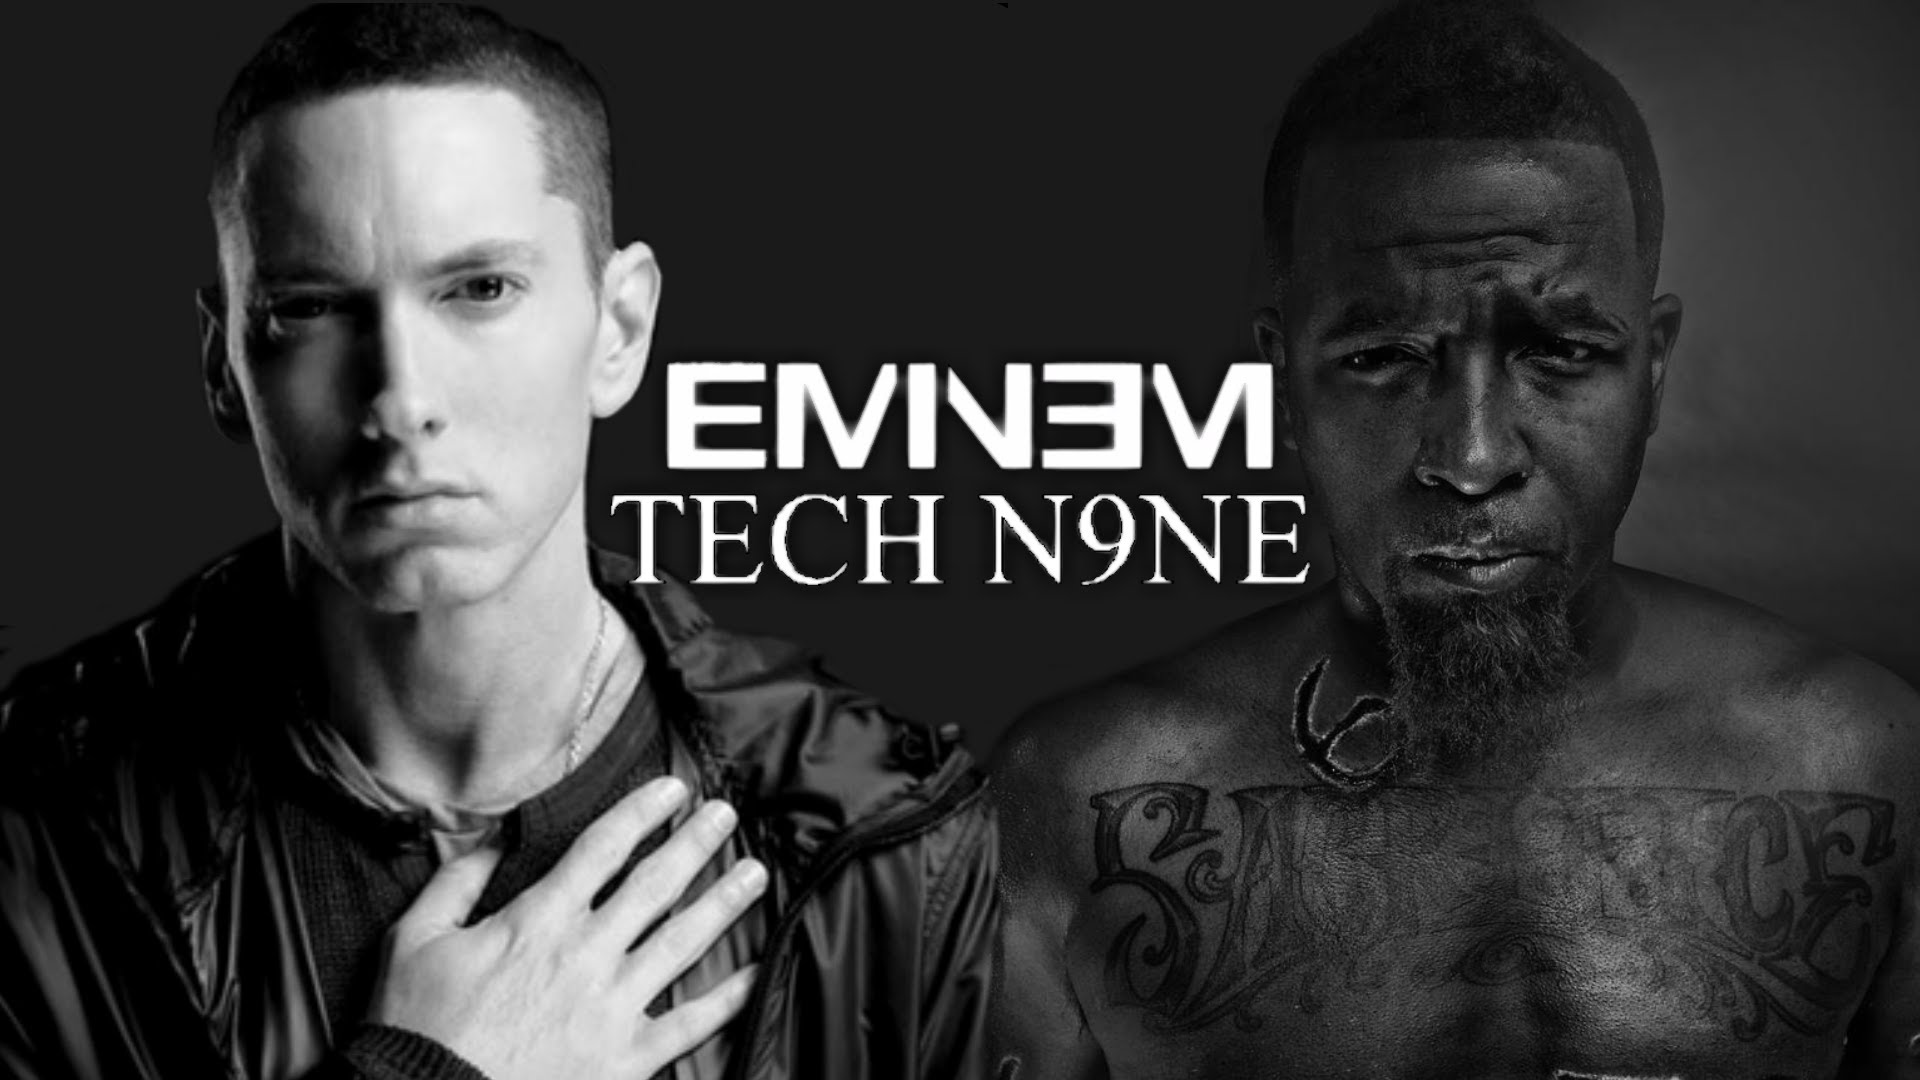 tech n9ne ft eminem, speedom eminem, speedom wwc 2 eminem ft tech n9ne, tech n9ne new album